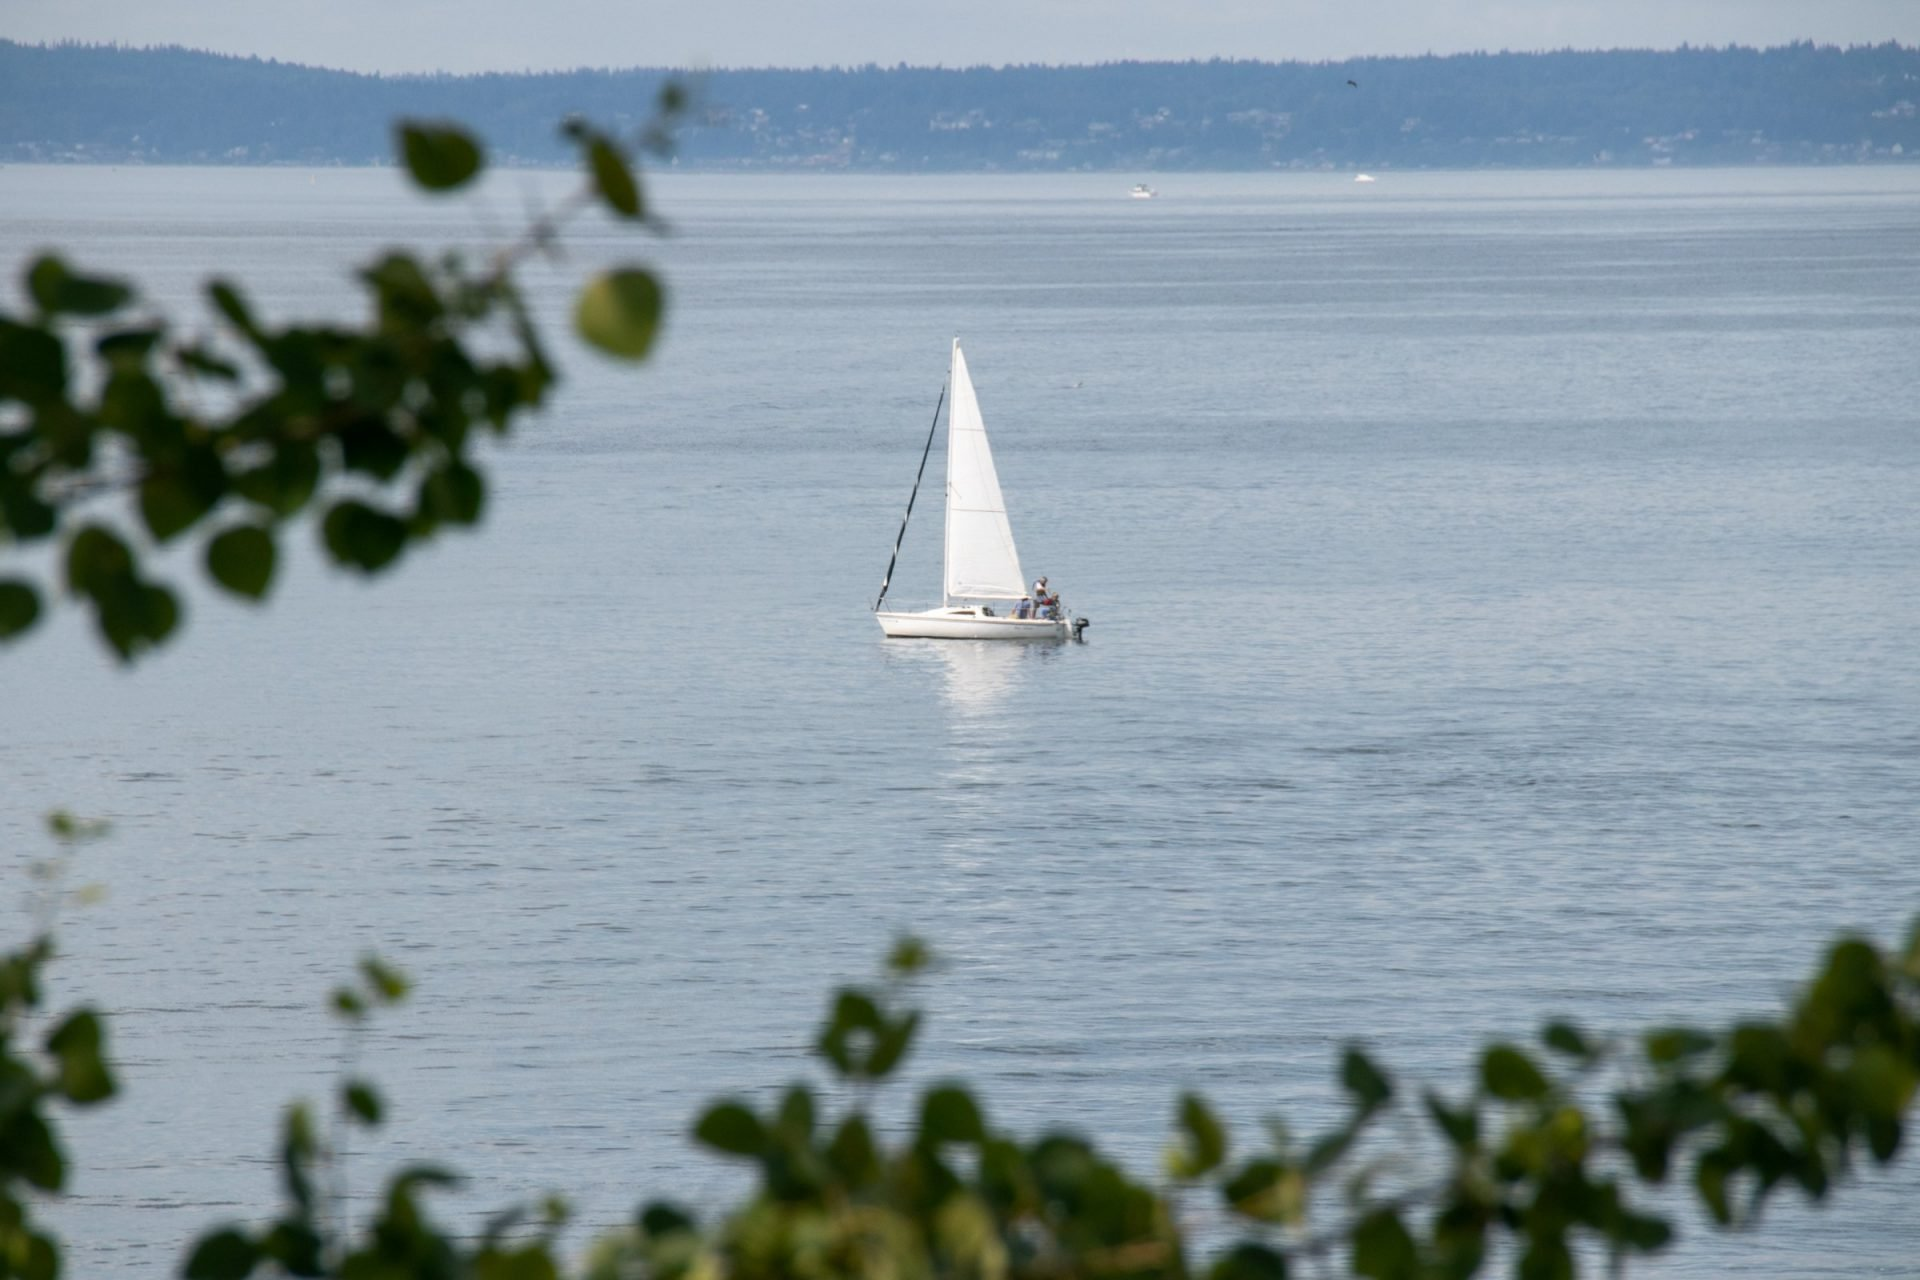 Small Sailboat On Water Near Shore